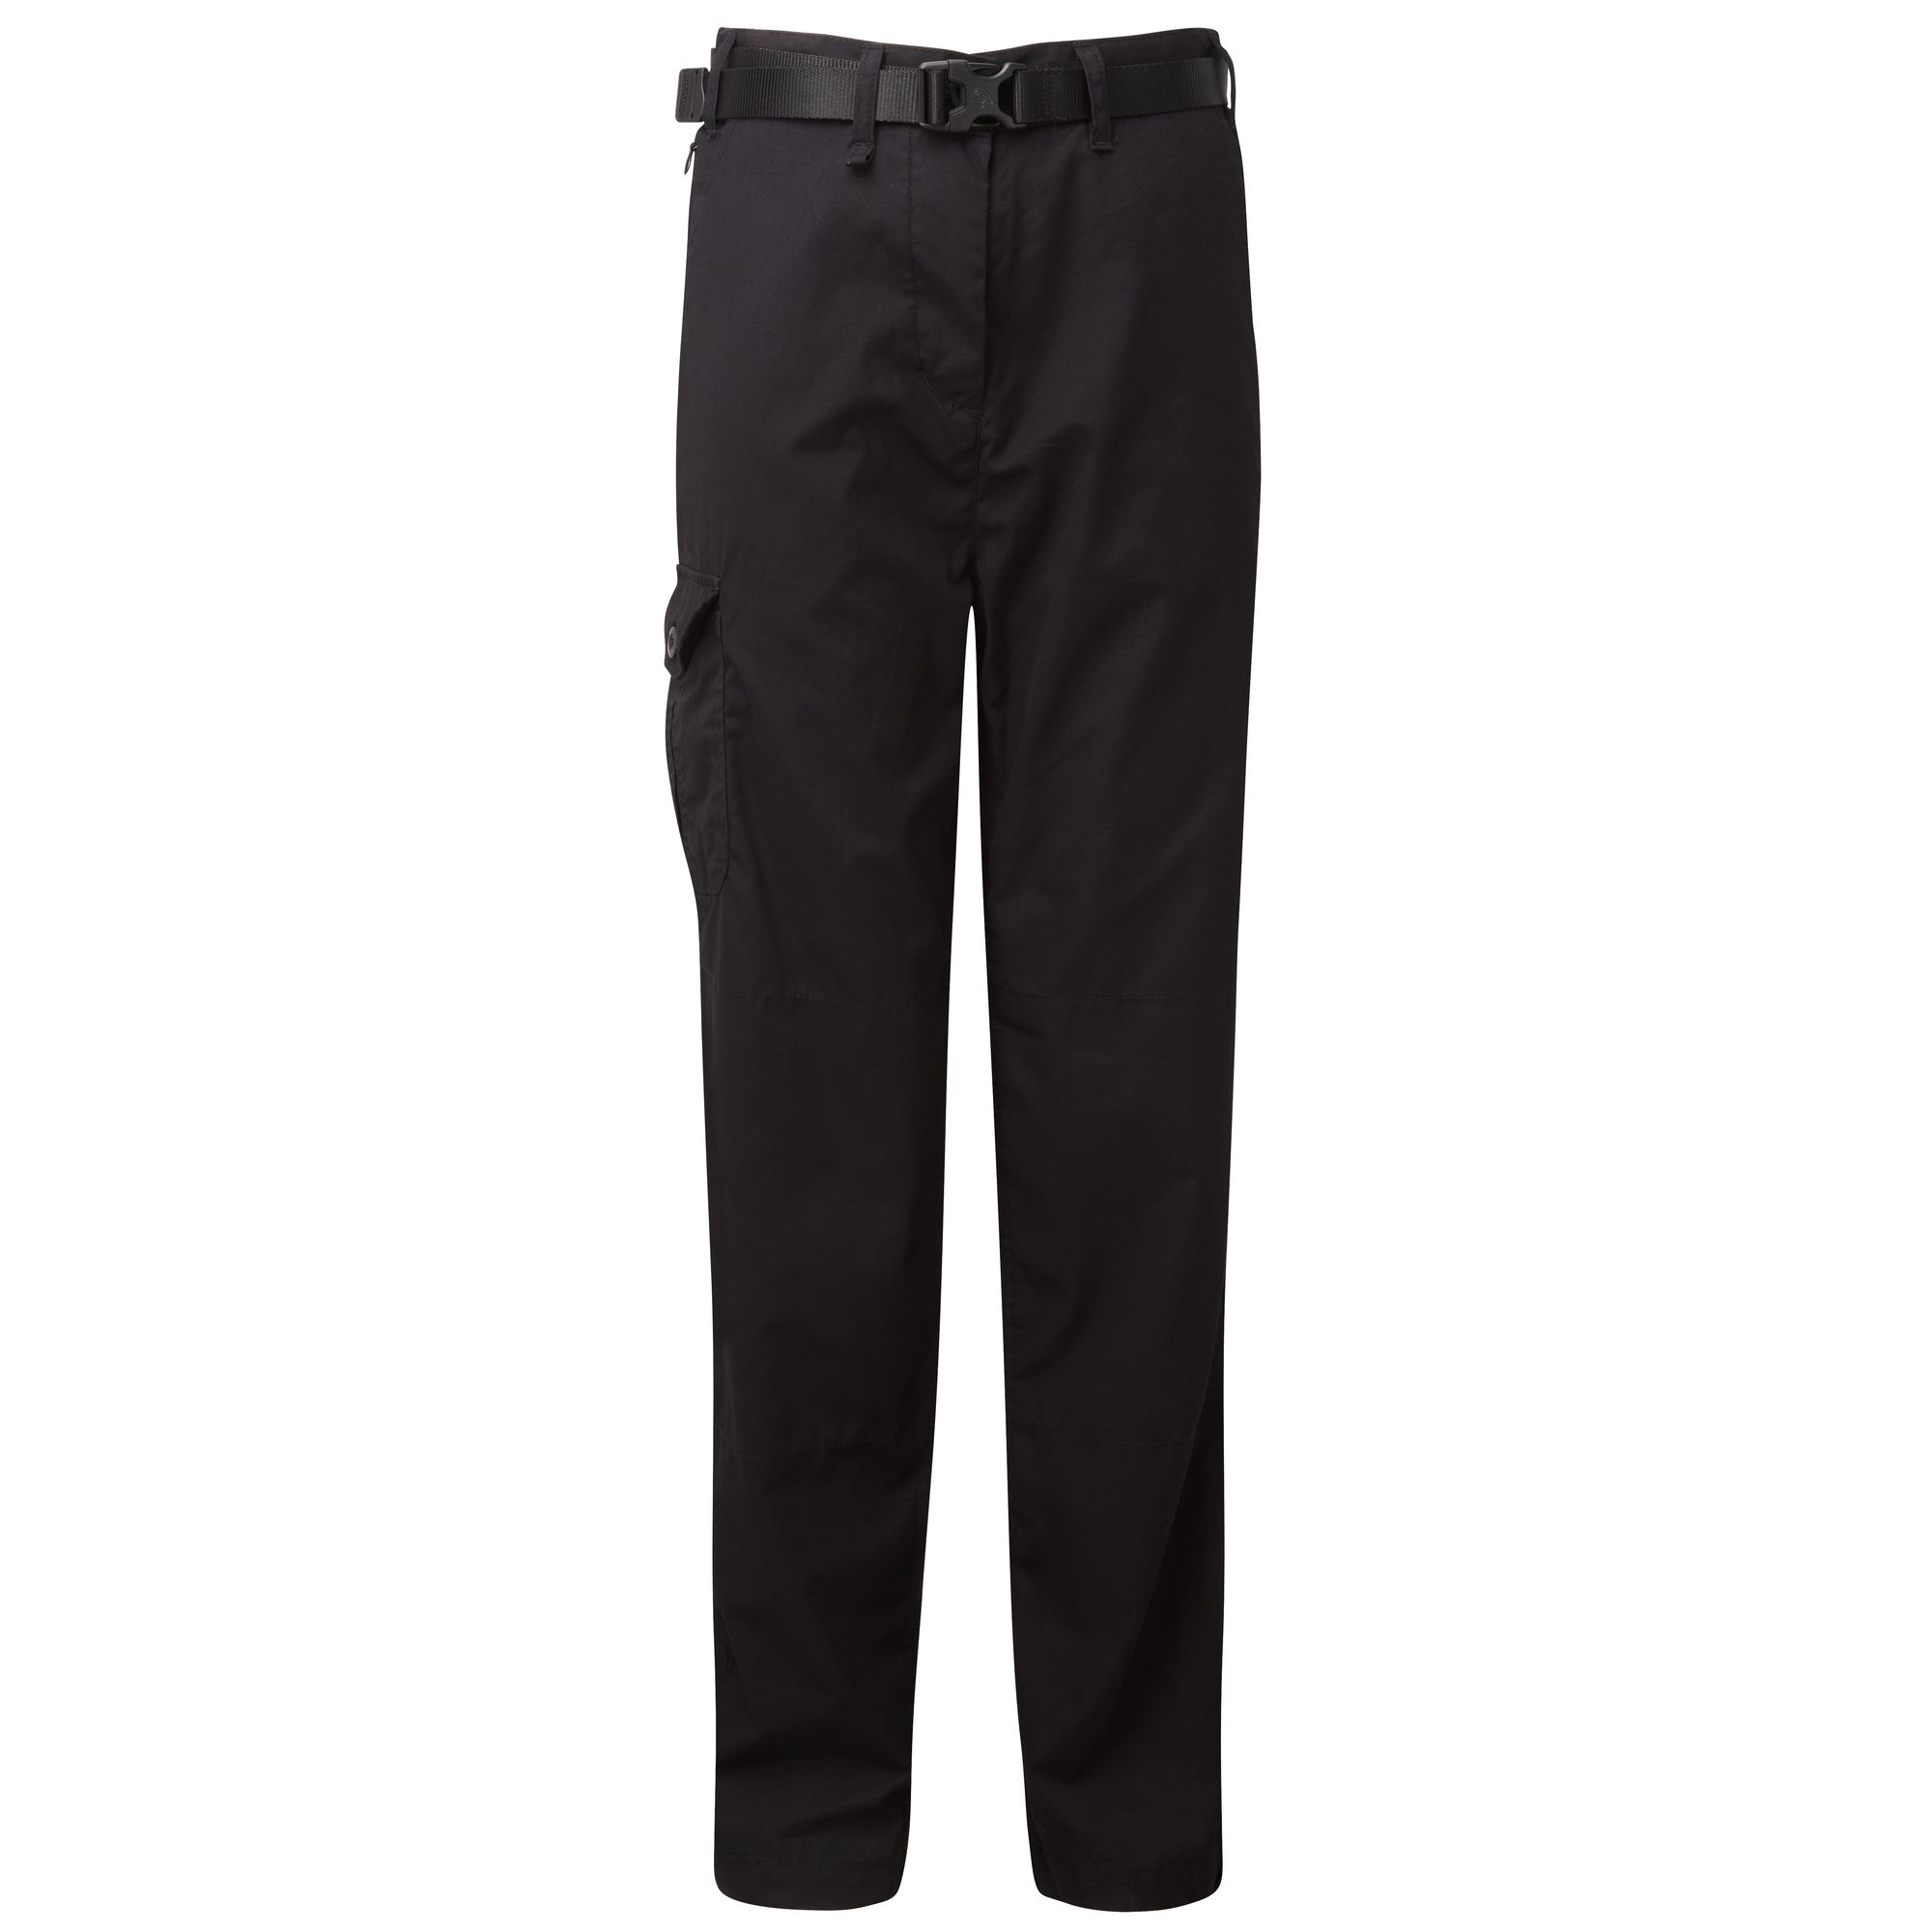 Craghoppers-Outdoor-Classic-Womens-Ladies-Kiwi-Travel-Trousers-CG124